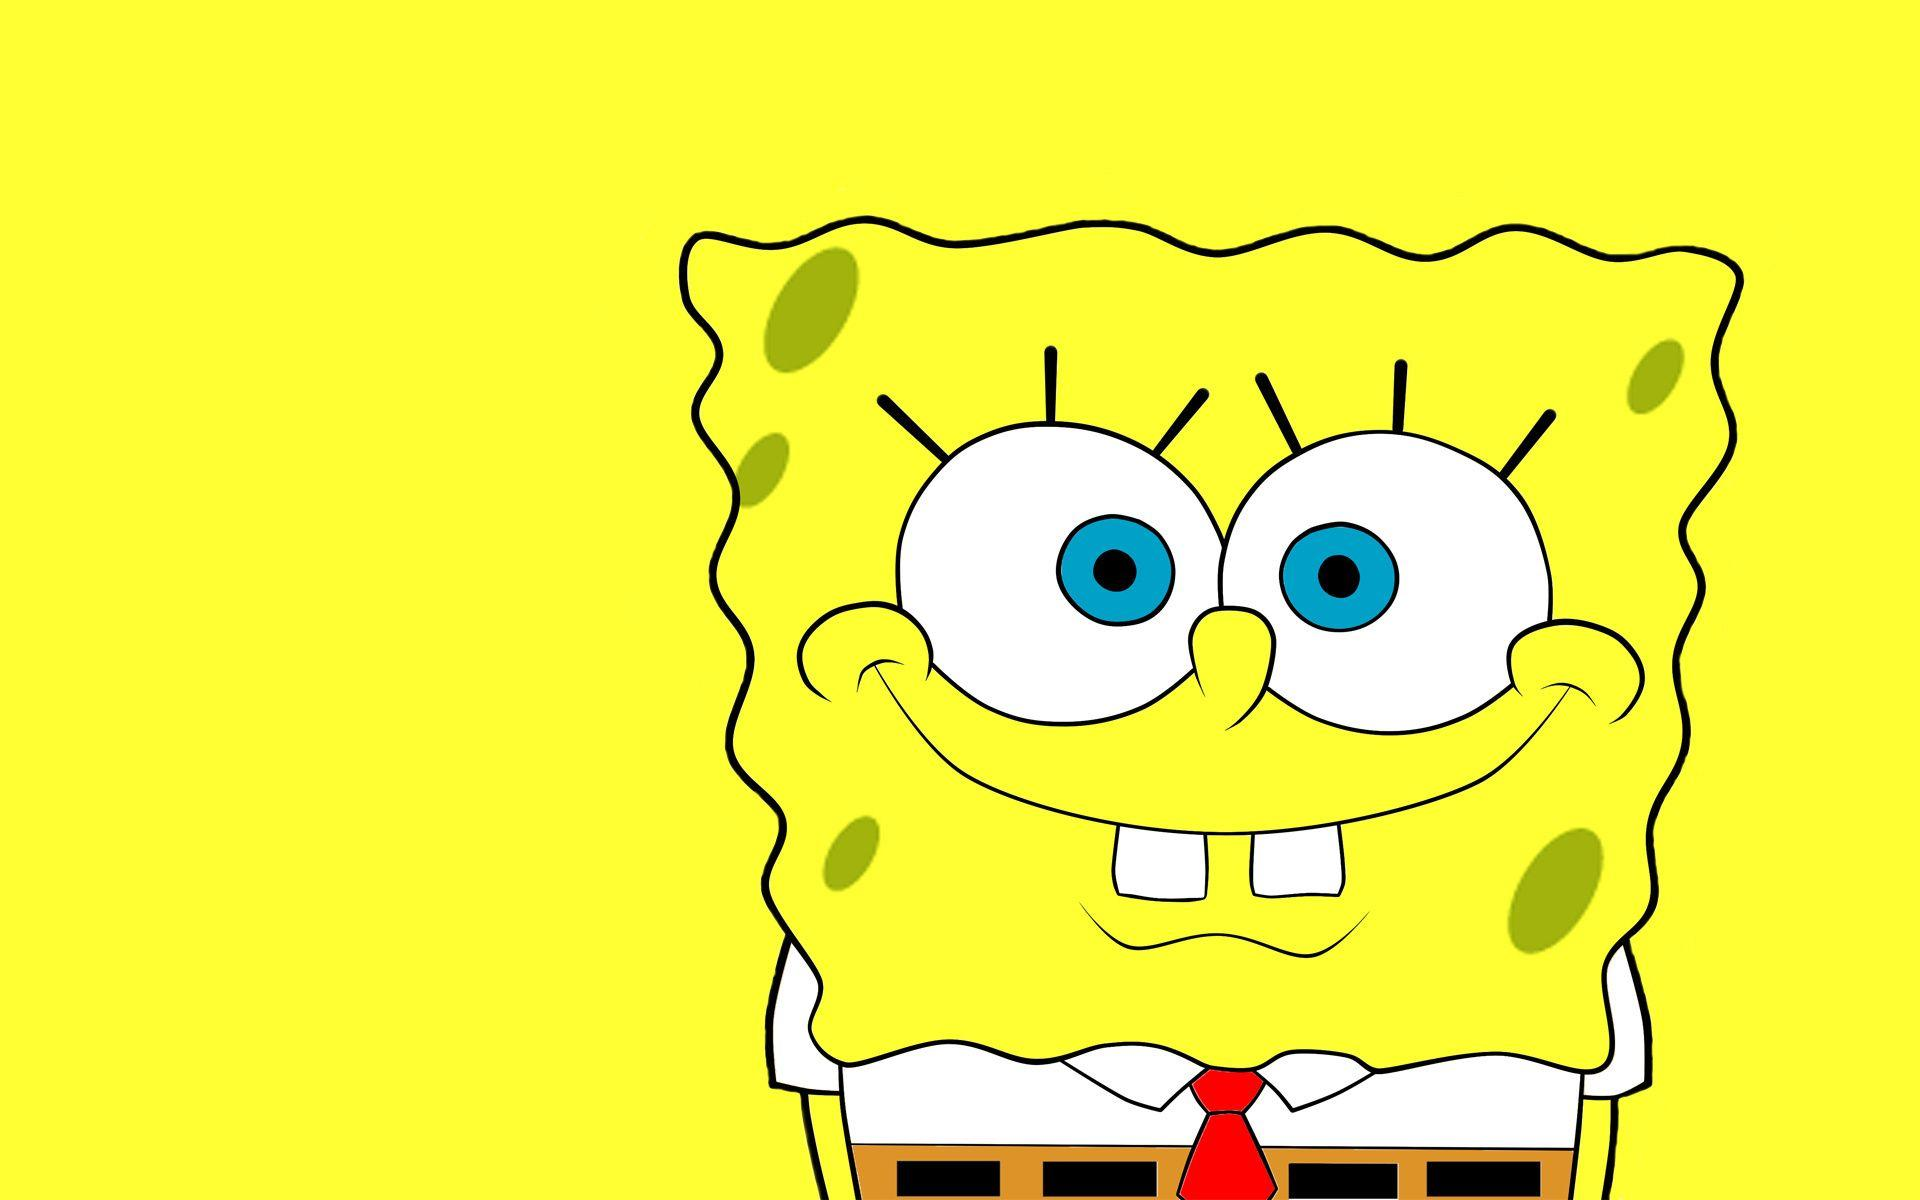 Spongebob HD Wallpapers | Download High Quality Resolution Wallpapers